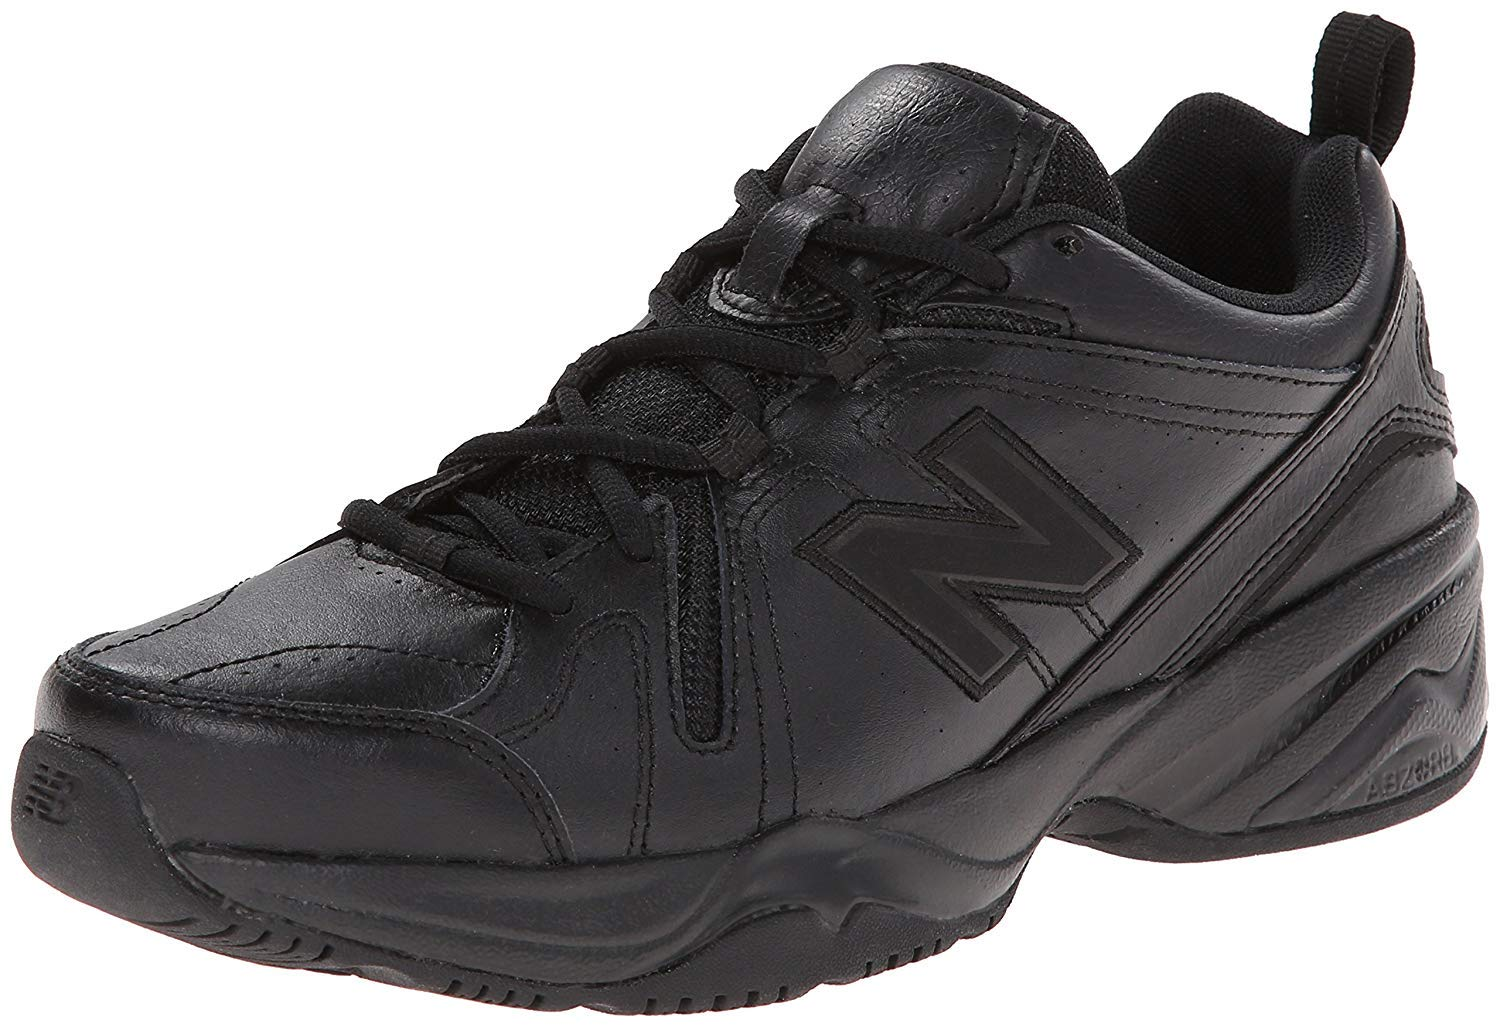 New Balance Women's WX608v4 Training Shoe, Black, 9 B US by New Balance